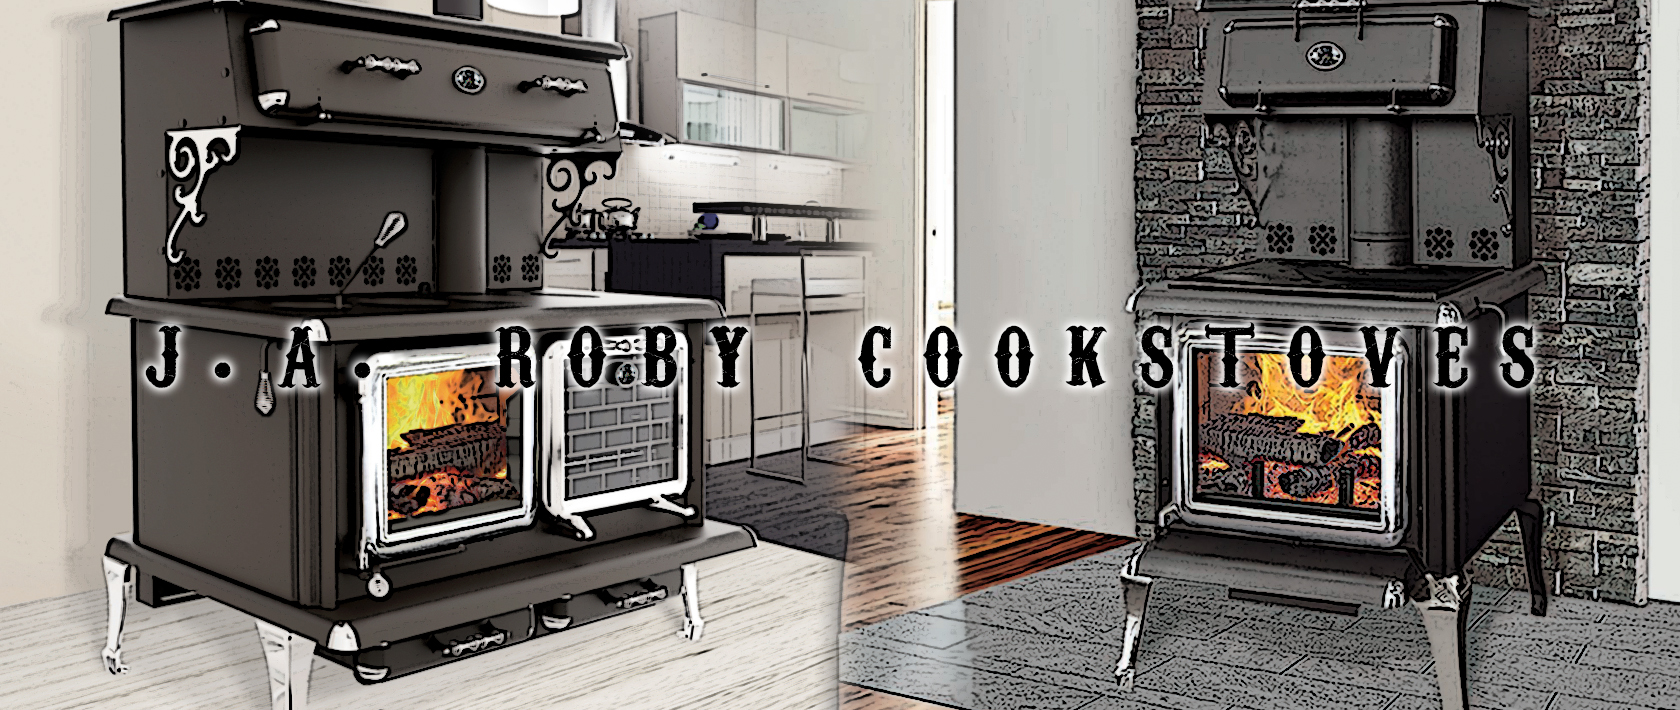 j a roby cookstoves cookstove community. Black Bedroom Furniture Sets. Home Design Ideas